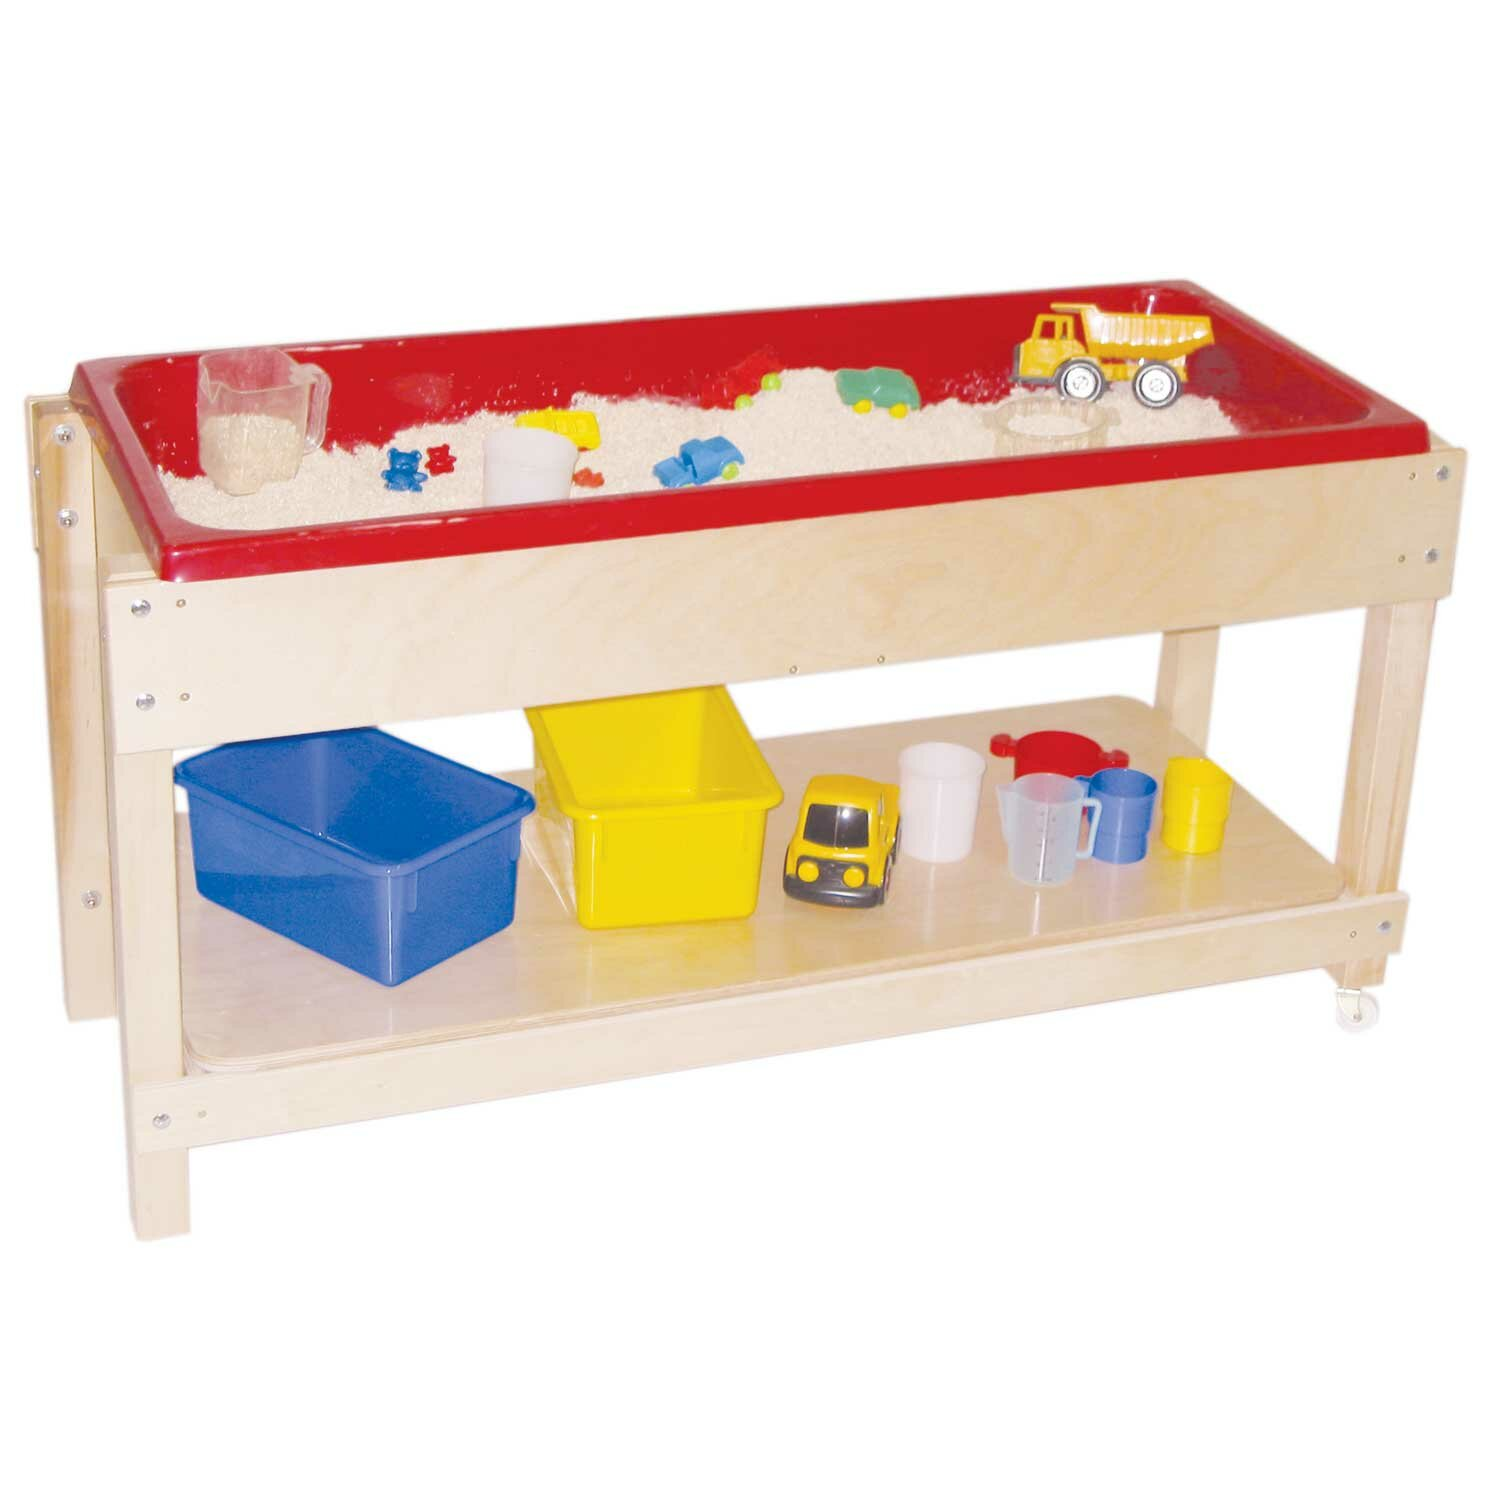 Table Top Play Kitchens